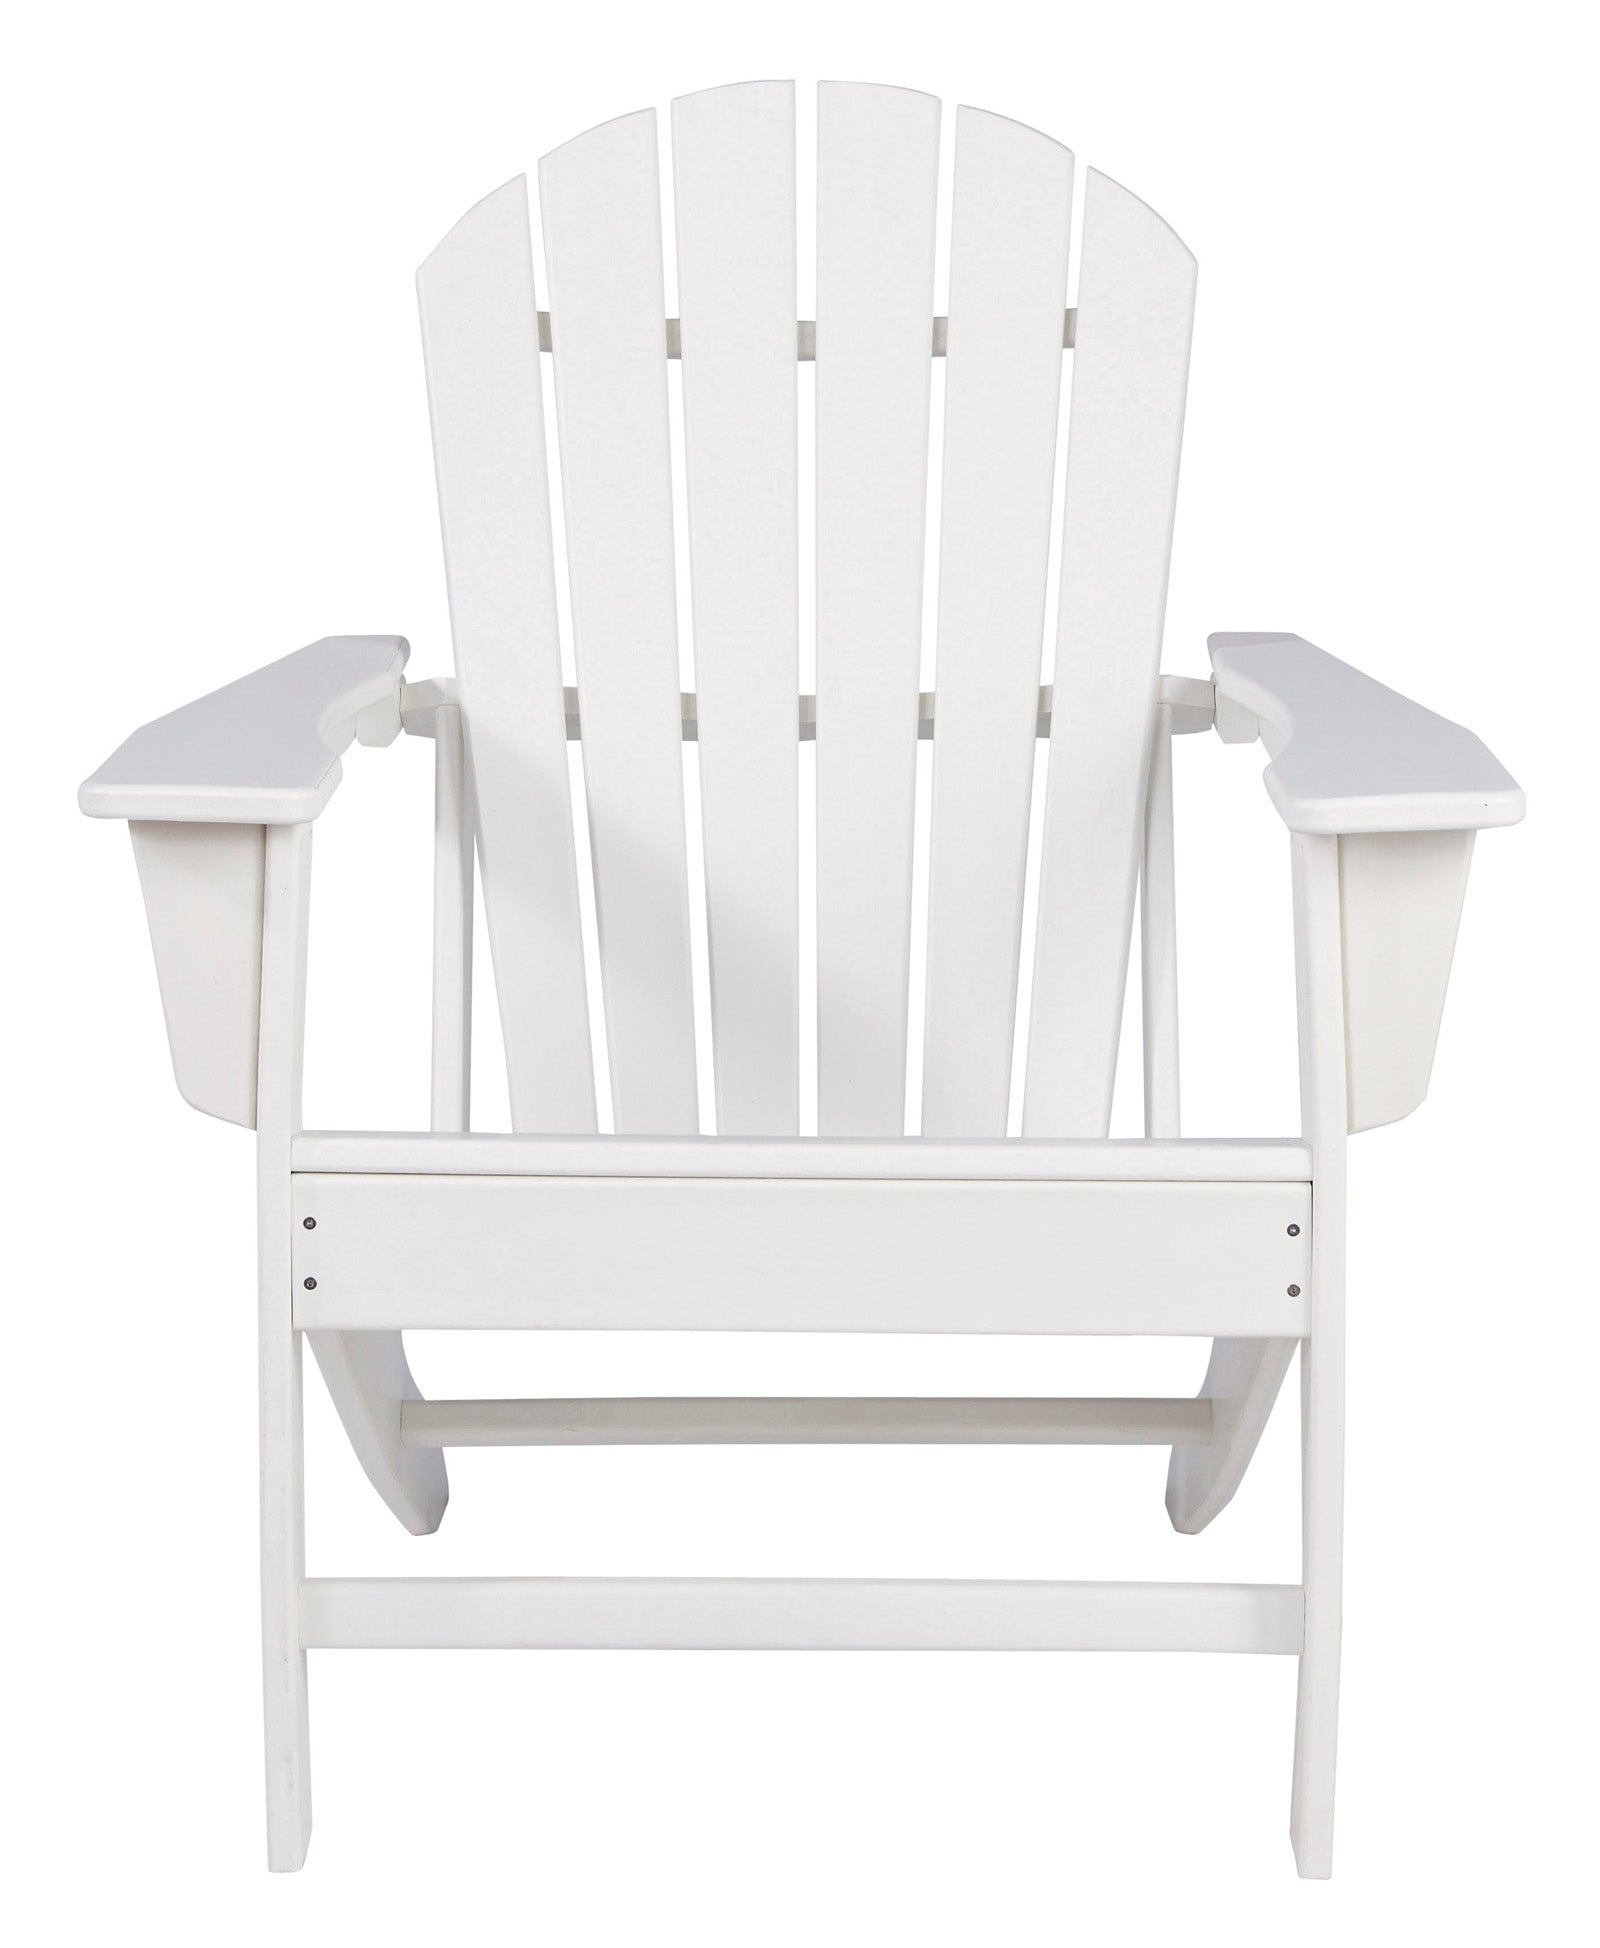 Sundown Treasure White Adirondack Chair - MJM Furniture